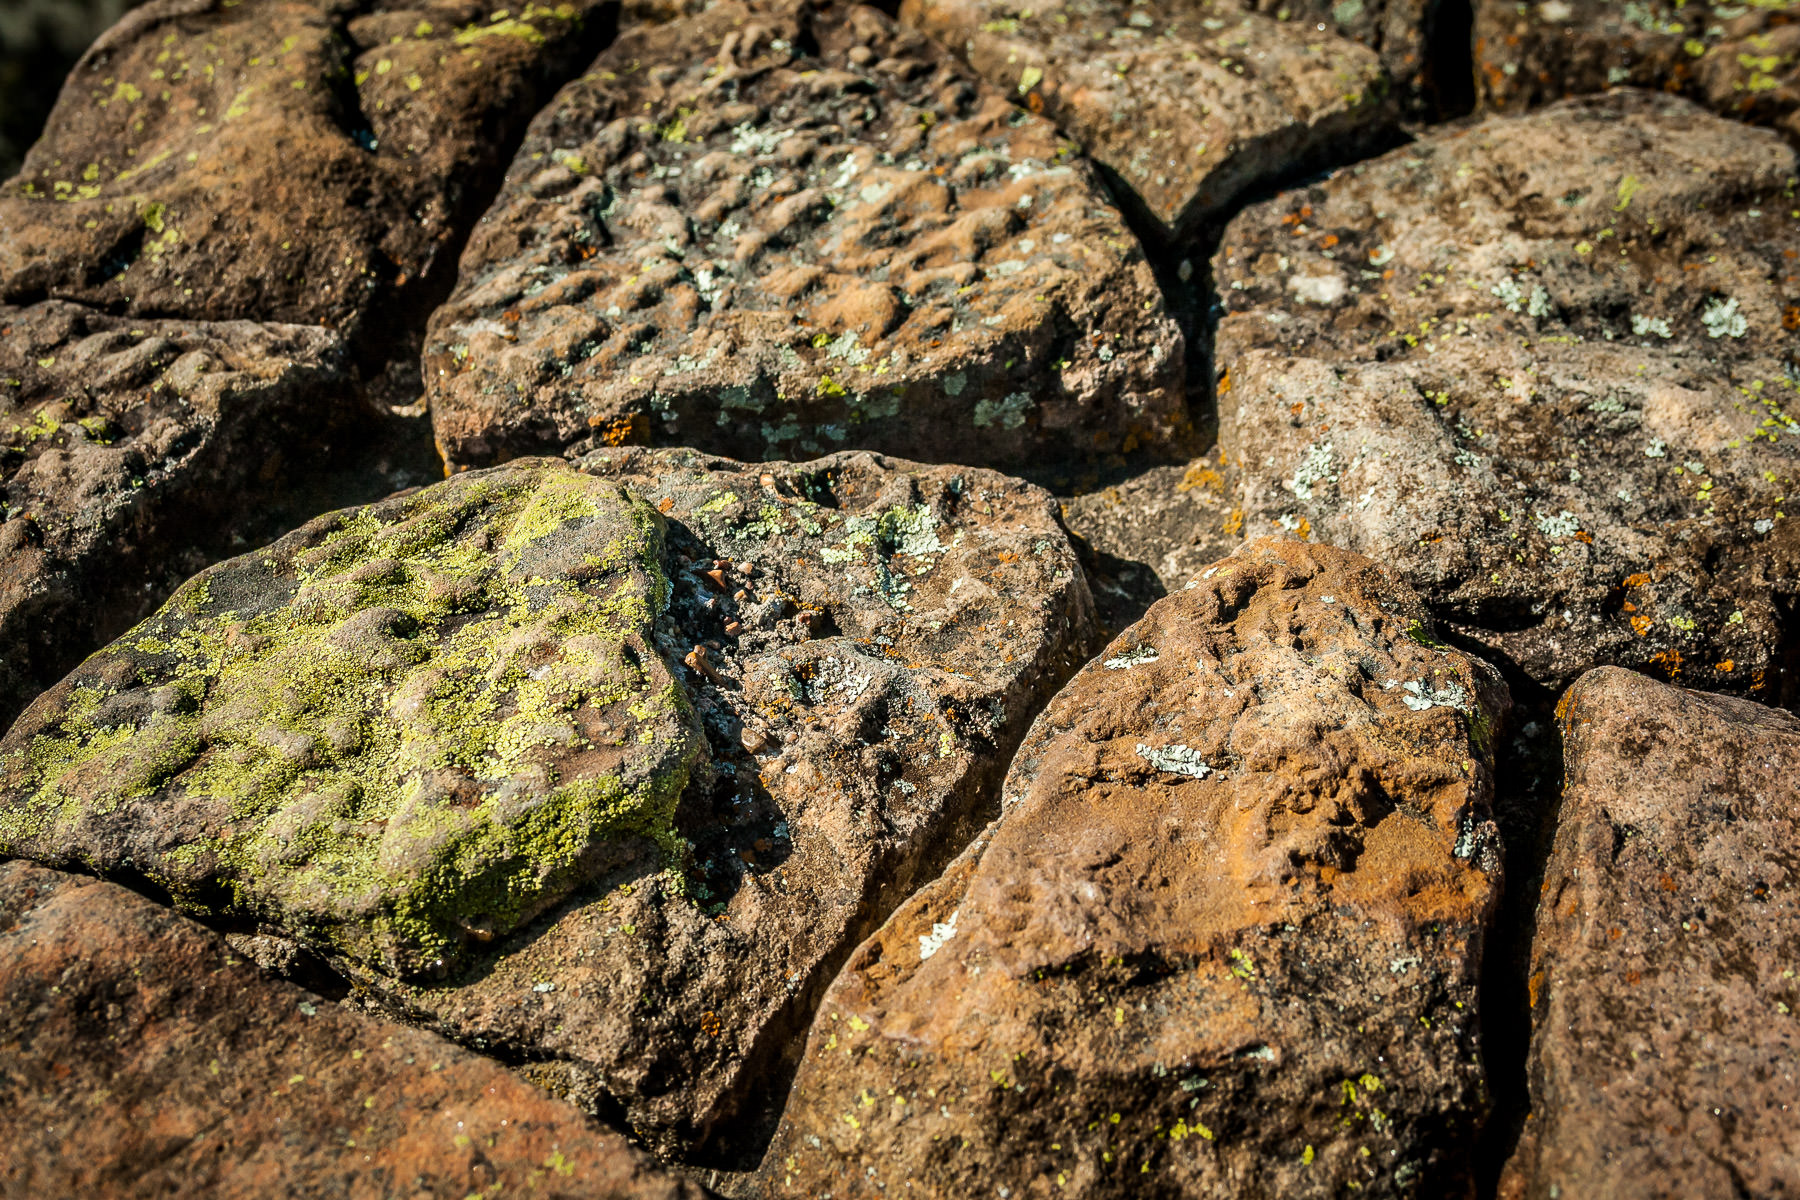 Detail of lichen-covered rocks at Lake Mineral Wells State Park, Texas.